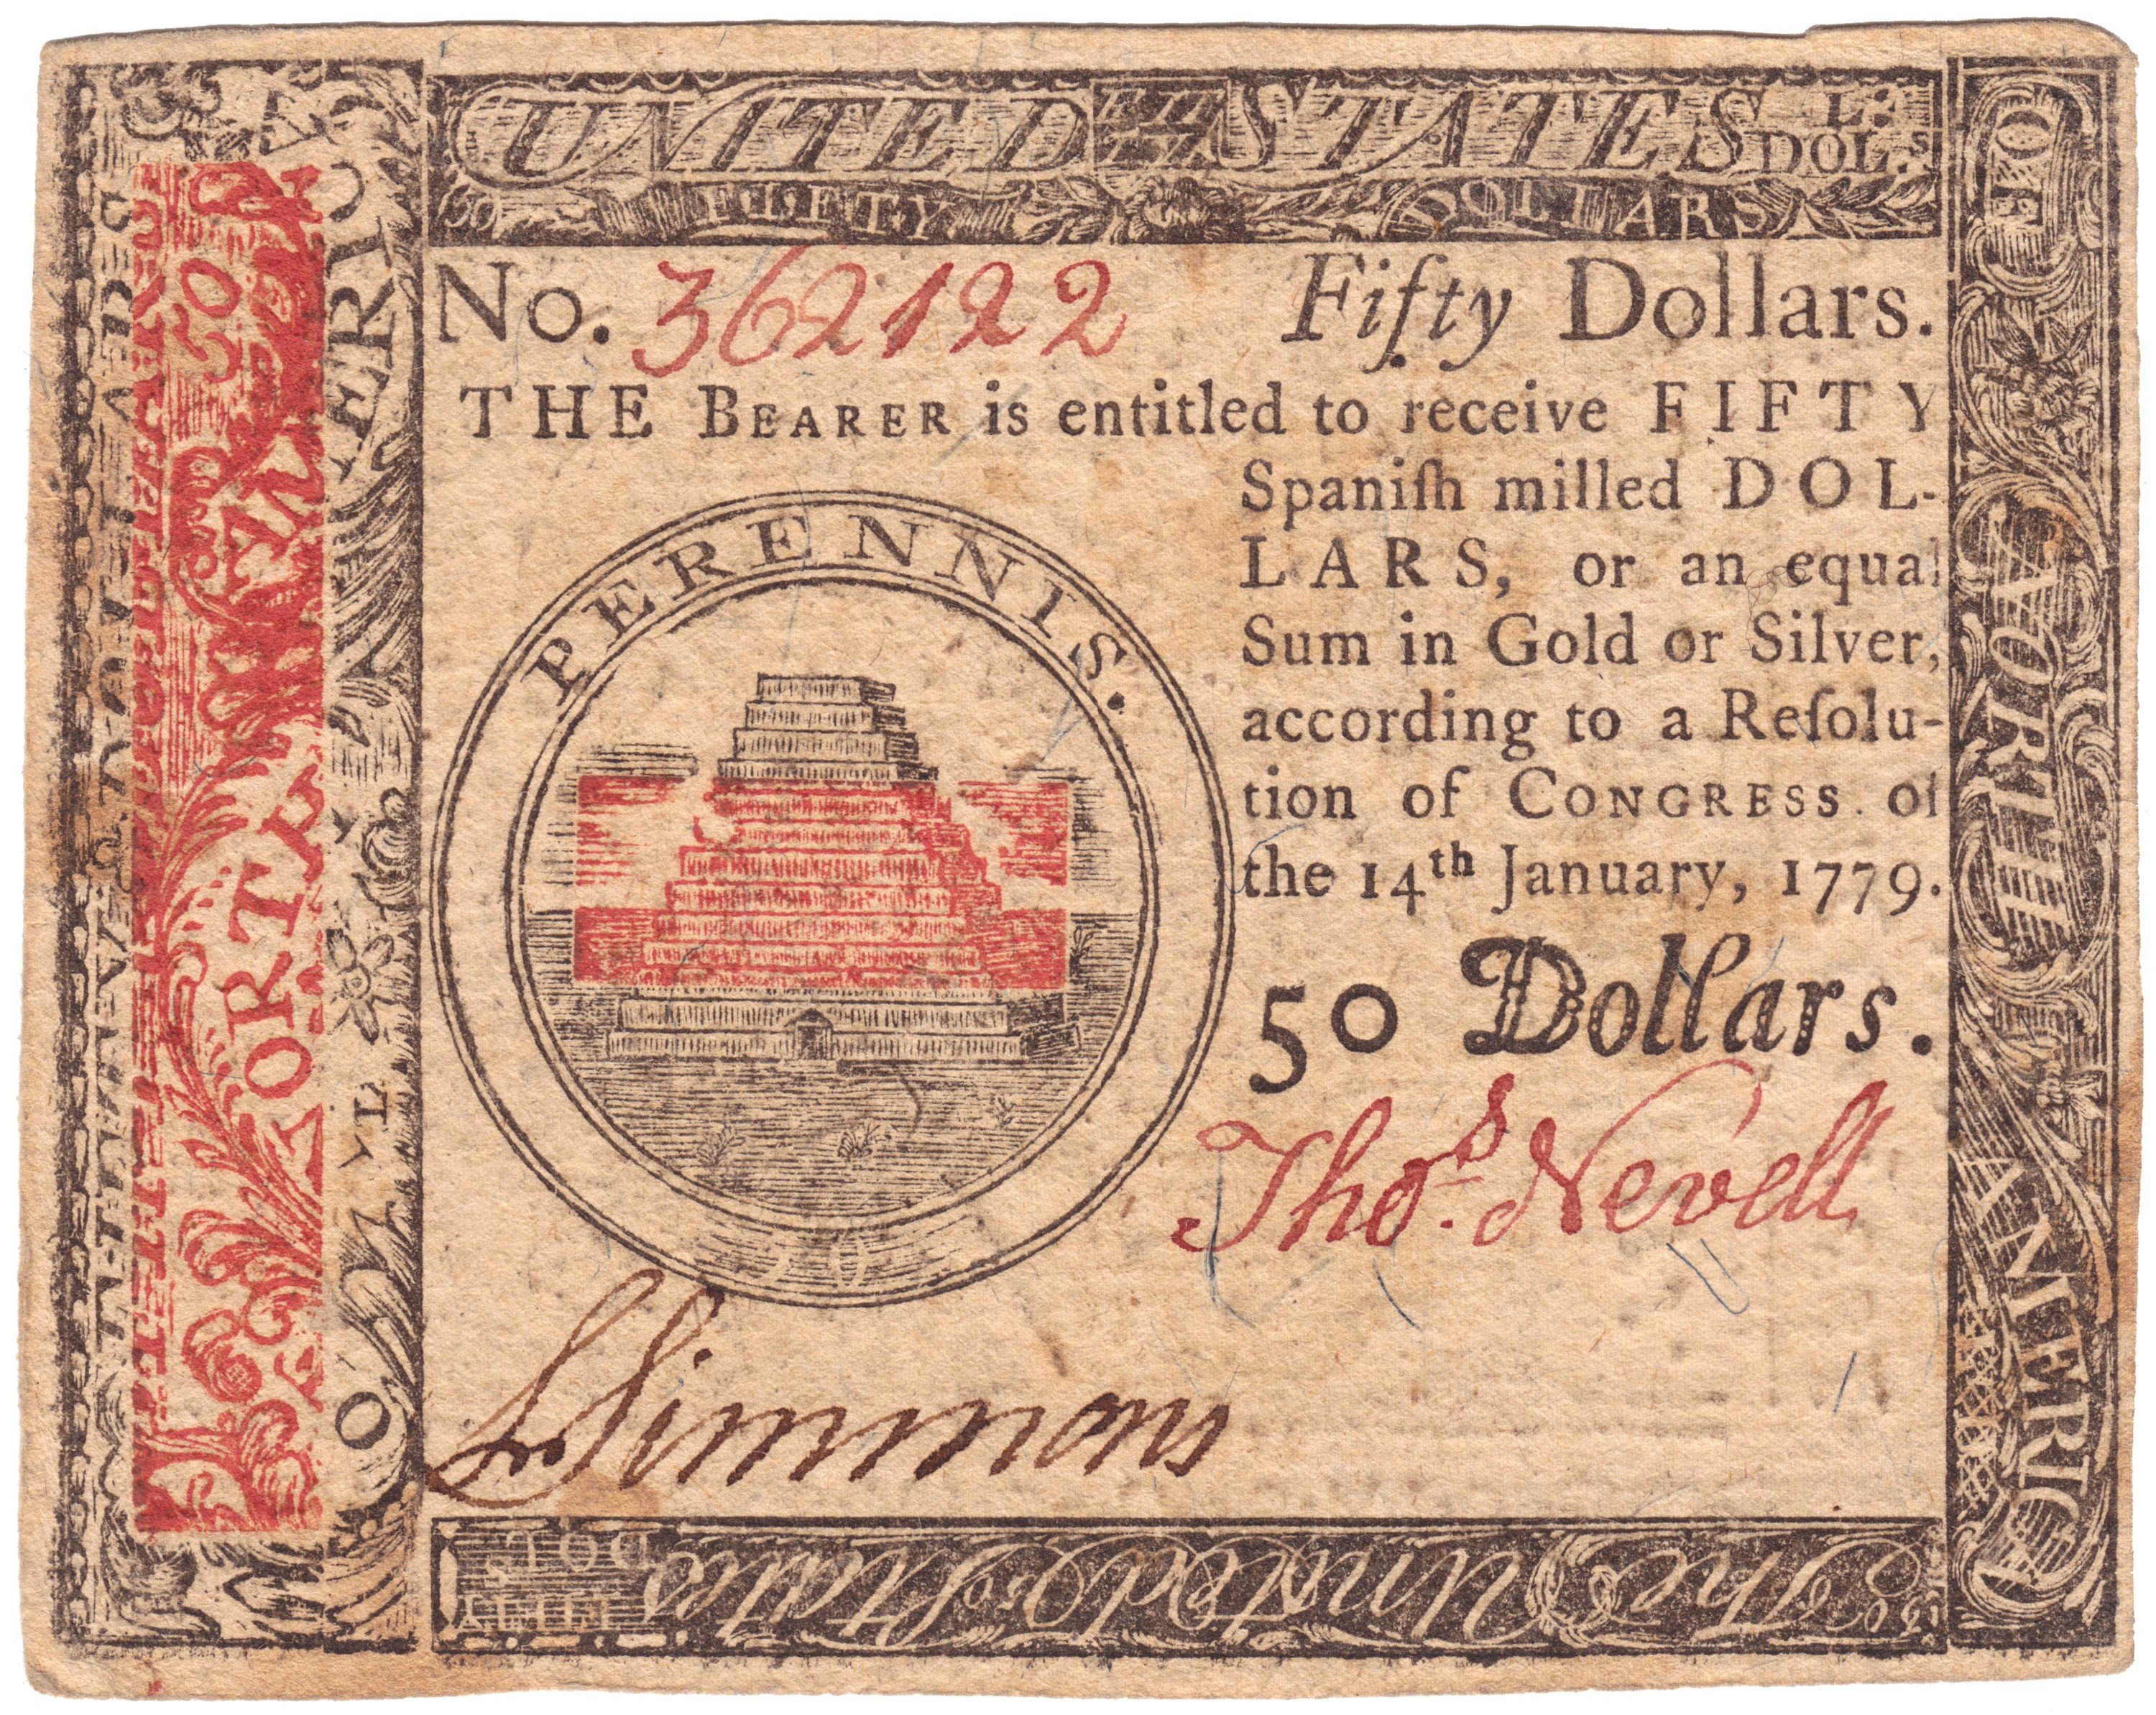 the history of money and currency in america The close of the 19th century saw various forms of currency co-circulating in the nation's economy, but money-related economic and banking crises continued a central problem revolved around the inability of the supply of these currencies to expand or contract to meet economic conditions.